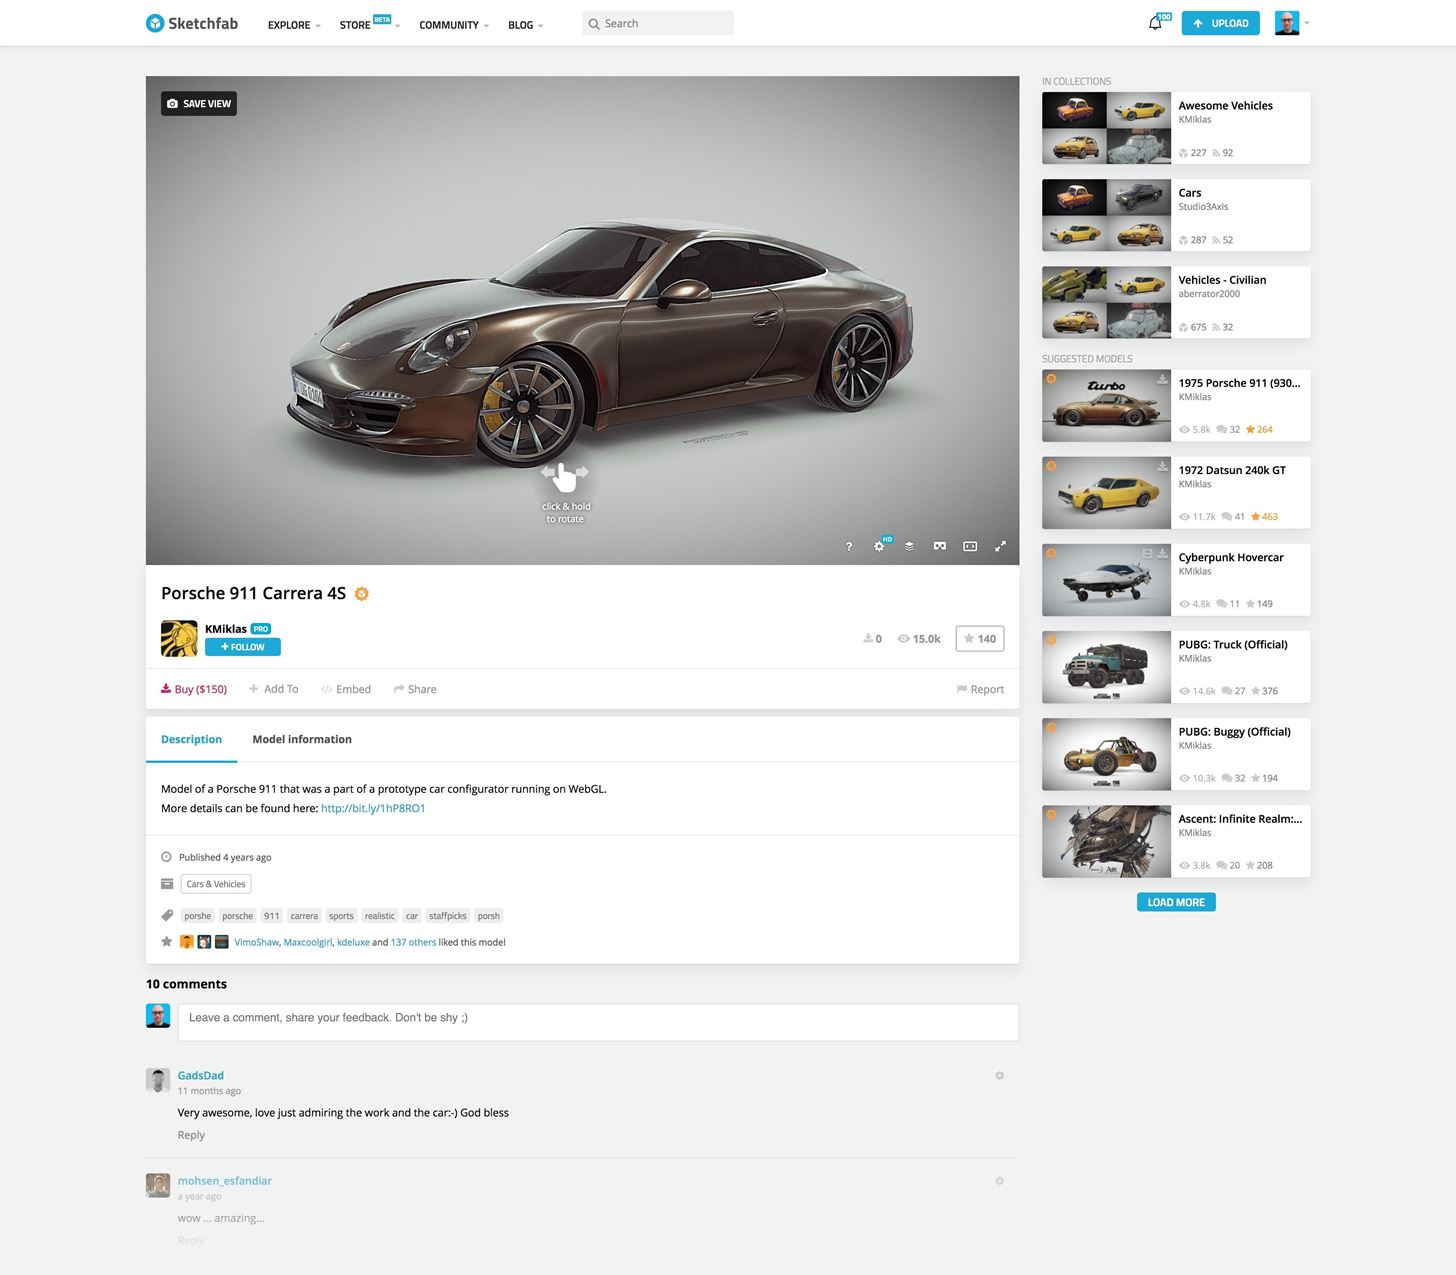 Sketchfab Launches Professional 3D Model Store for AR & VR